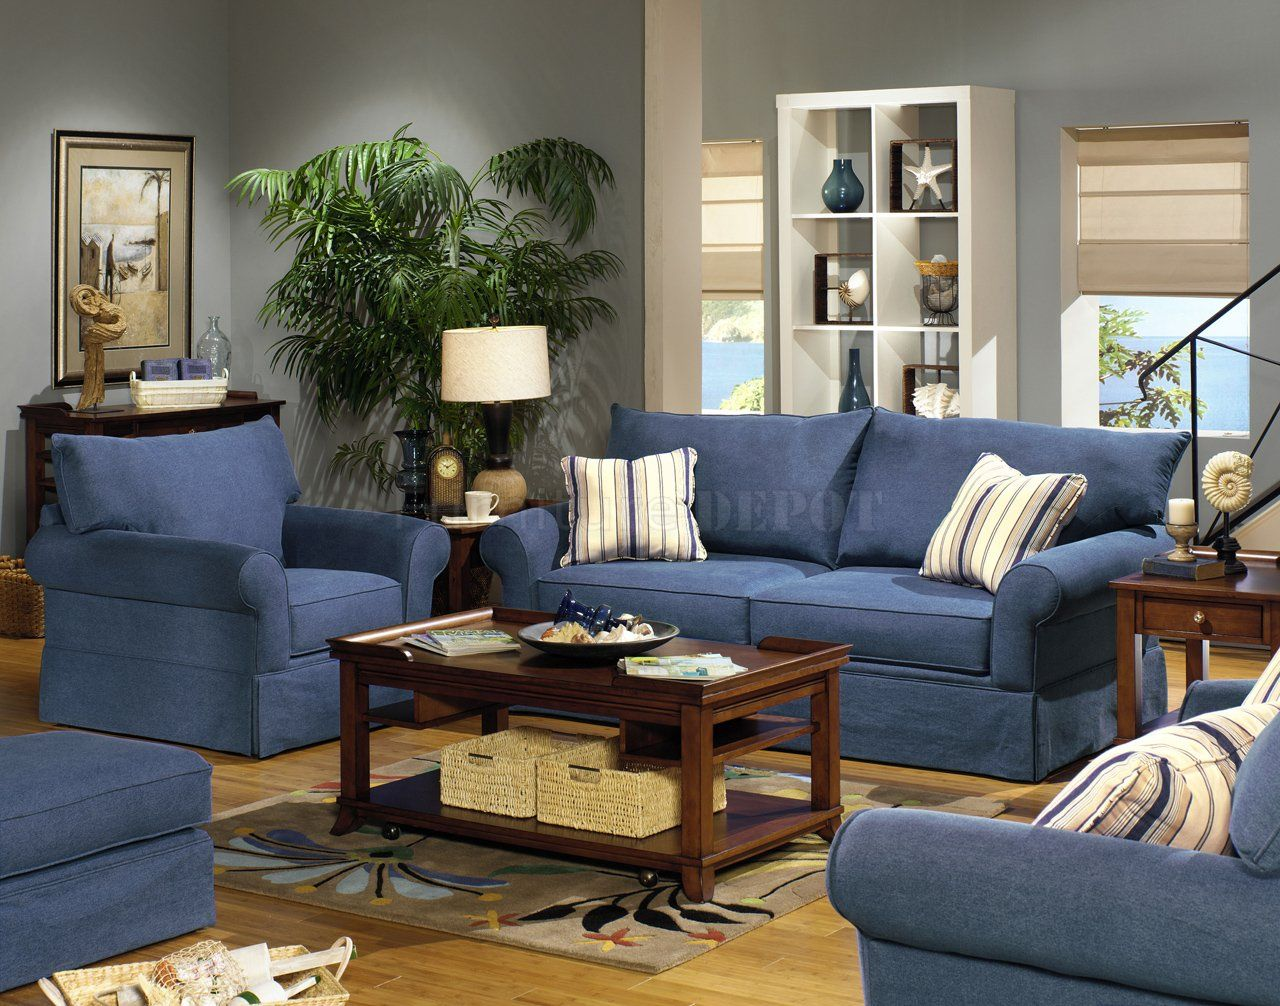 Best Blue Living Room Furniture Sets Blue Denim Fabric Modern Sofa Loveseat Set W Options 400 x 300